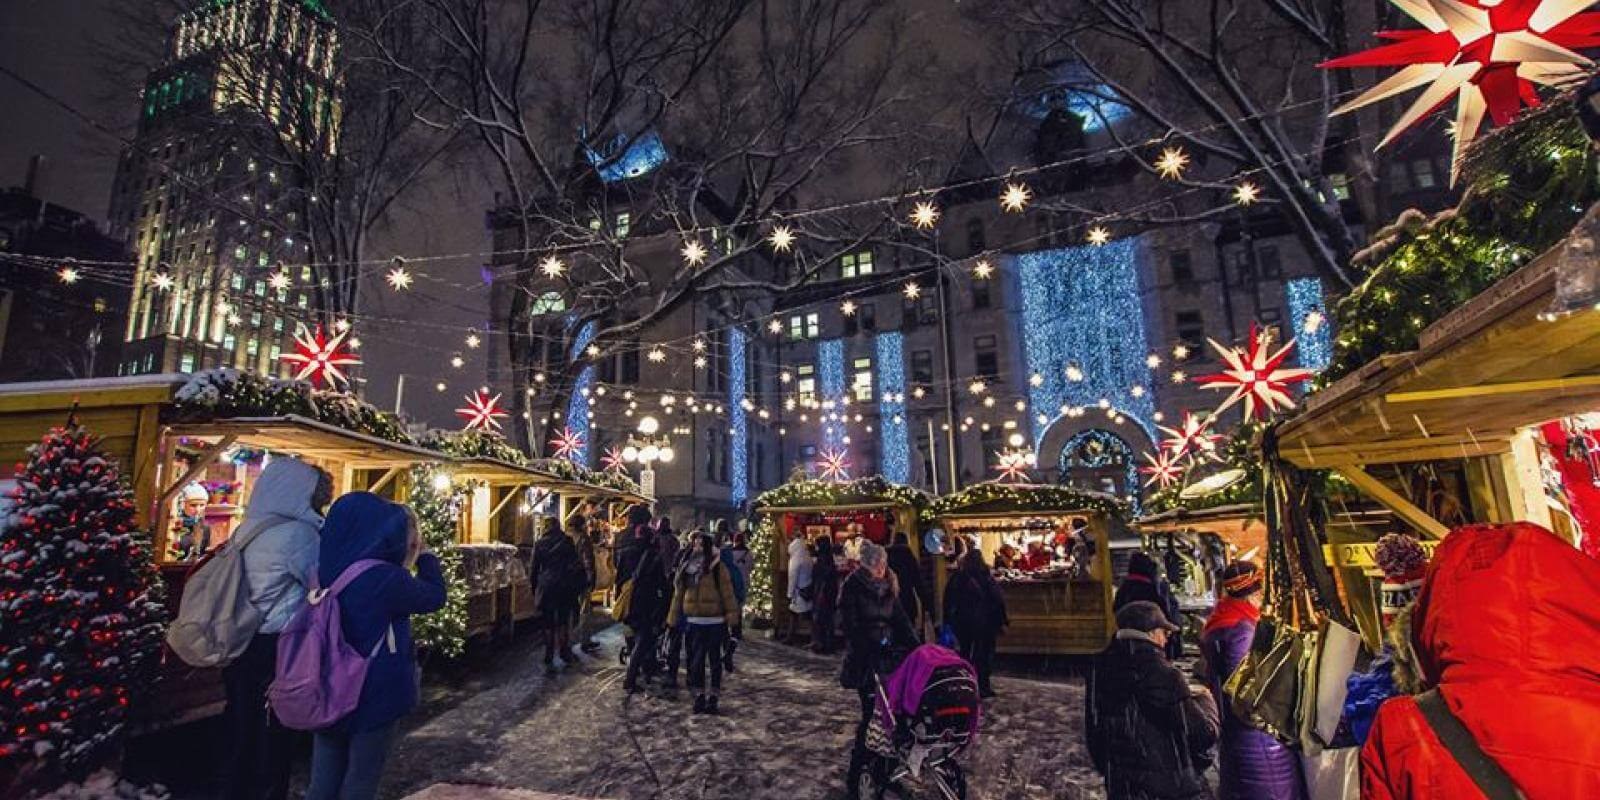 Christmas In Quebec City 2020 German Christmas Market| Events in Québec City